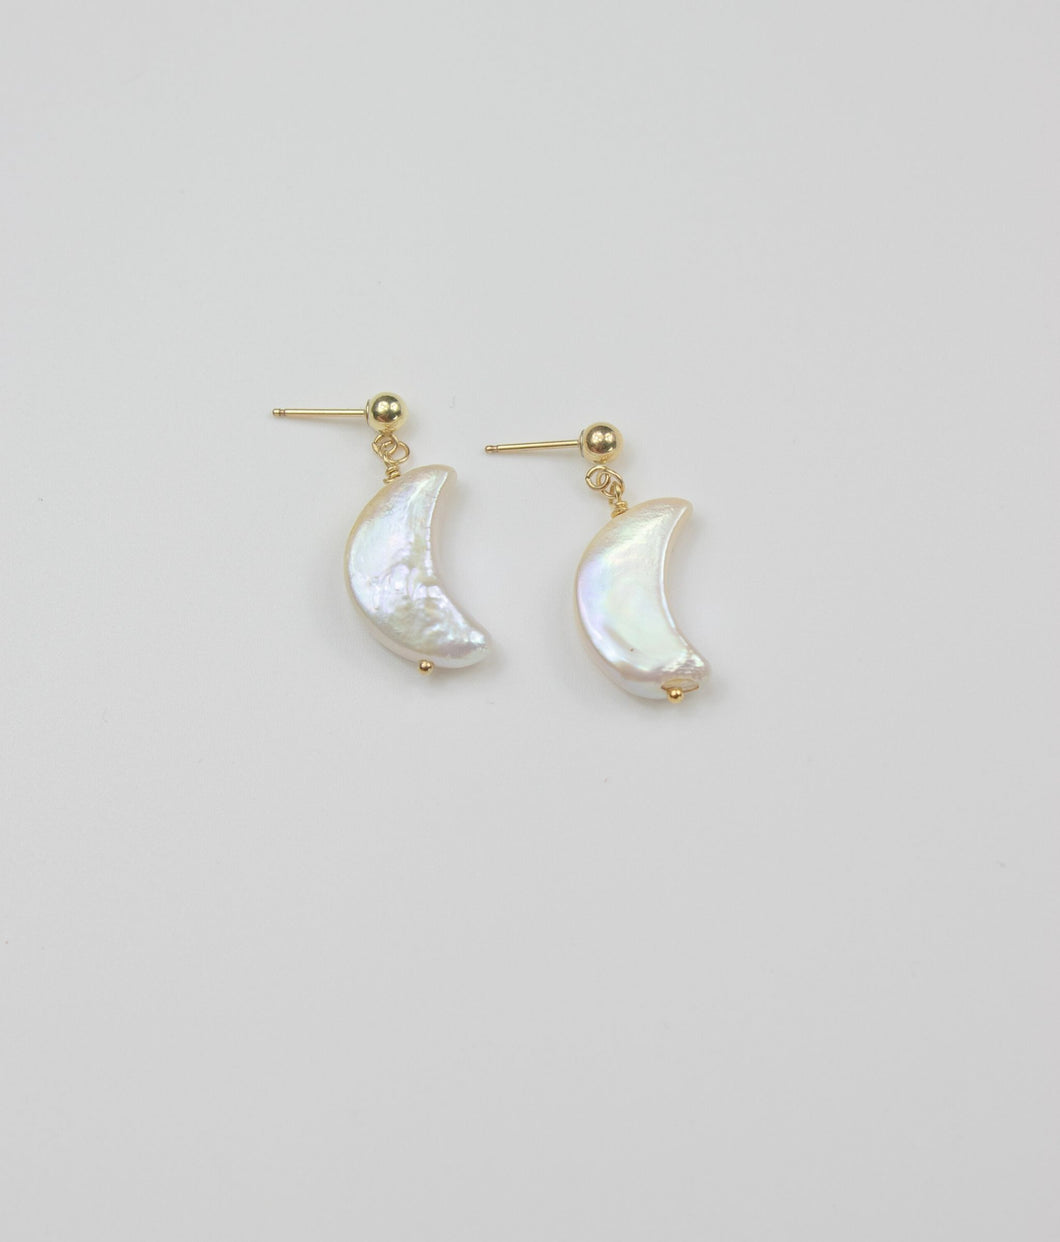 LA LUNA PEARL EARRINGS